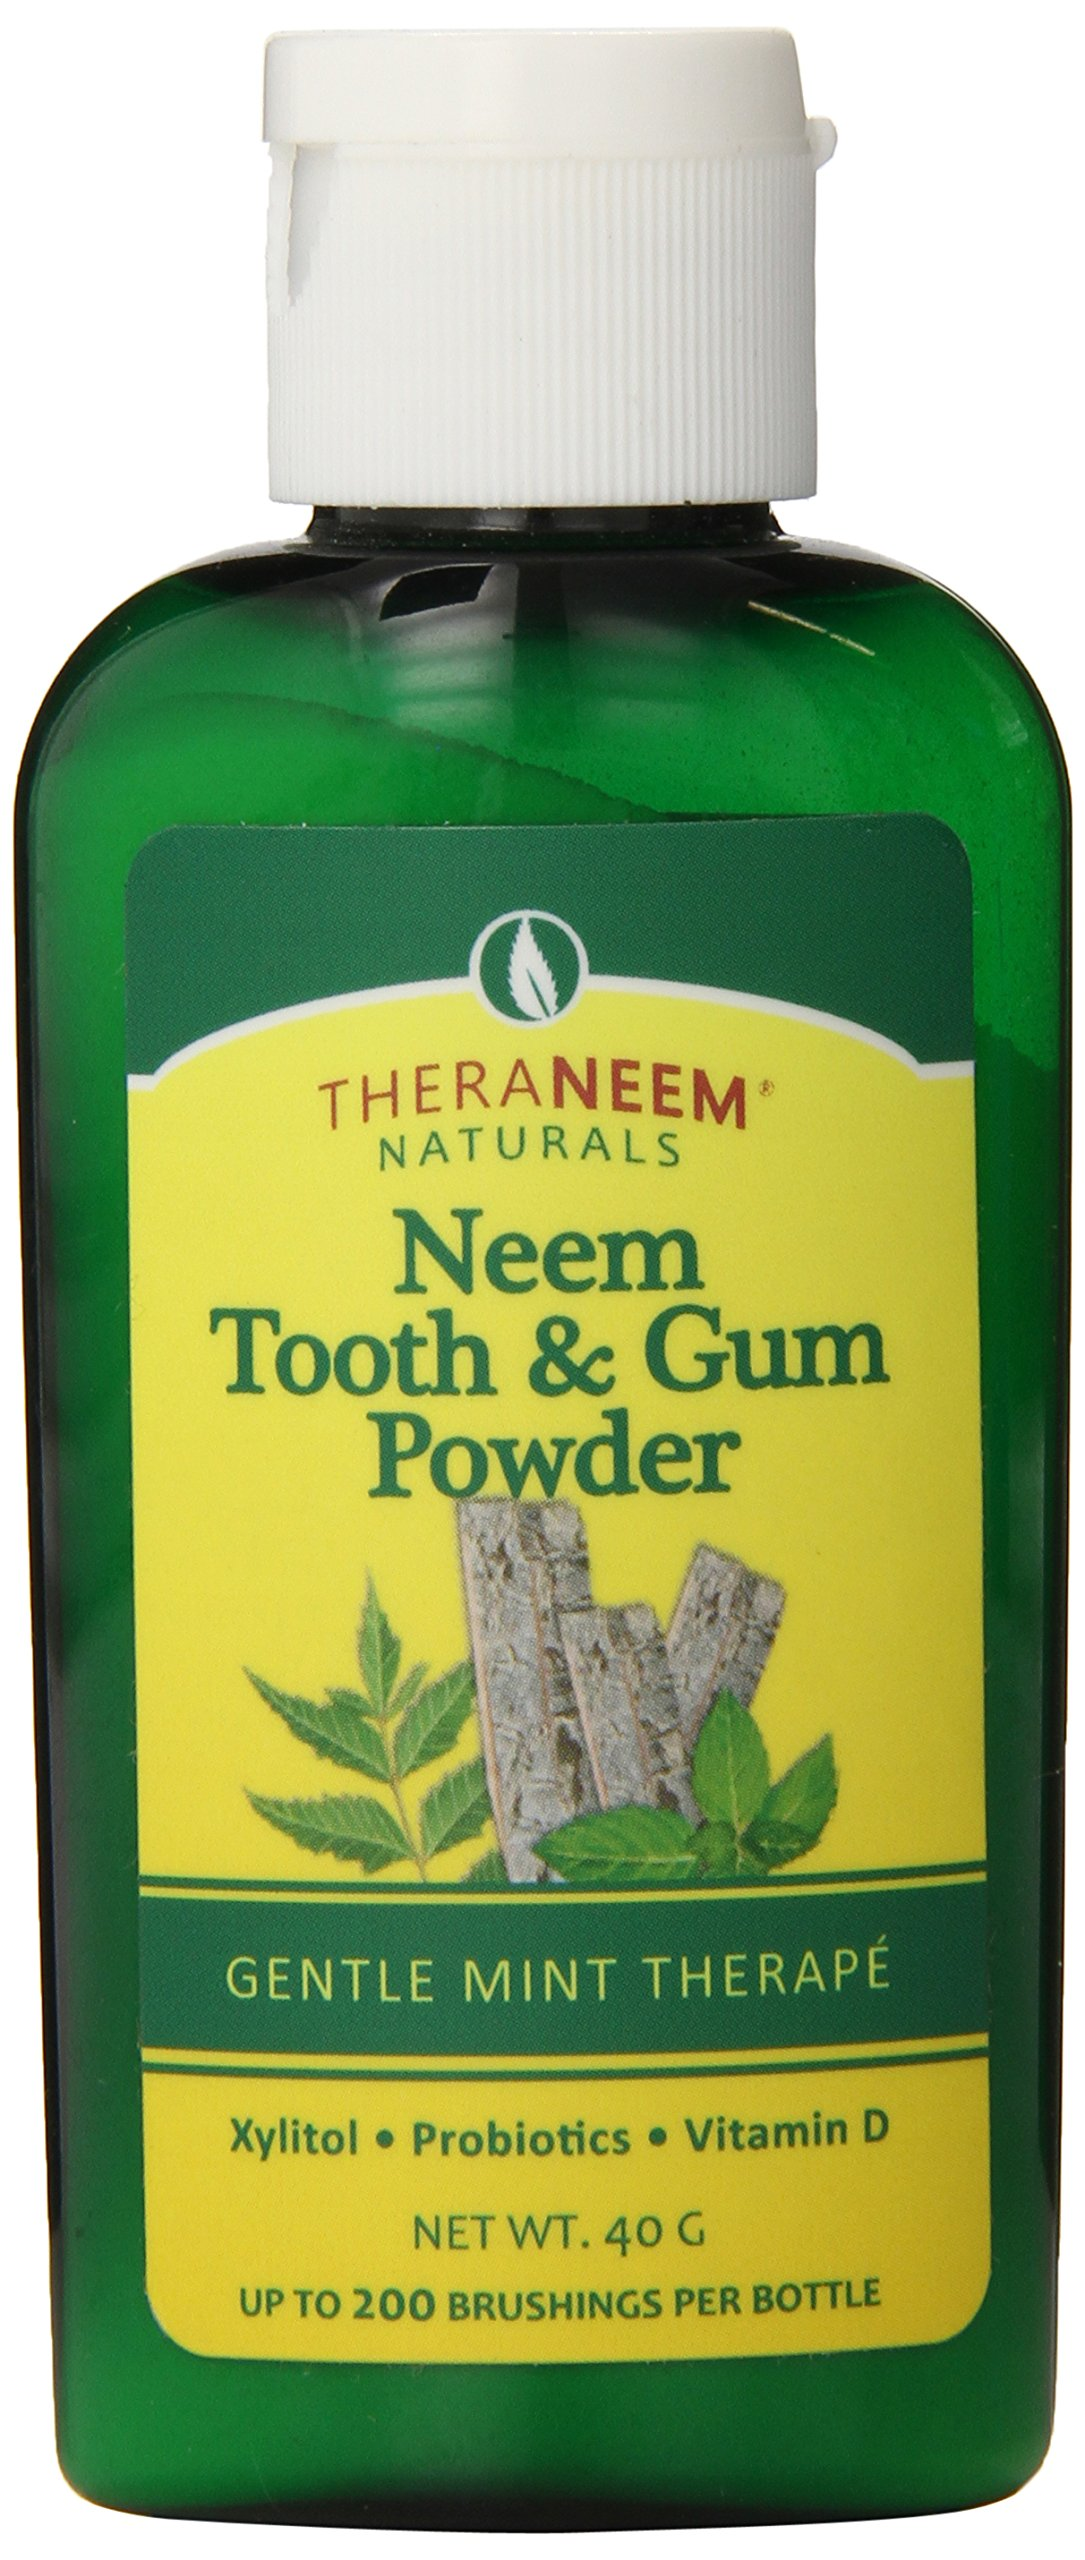 TheraNeem Tooth & Gum Powder   Supports Healthy Teeth & Gums with Probiotics, Vitamin D   Mint, 40 grams, Up to 200 Uses